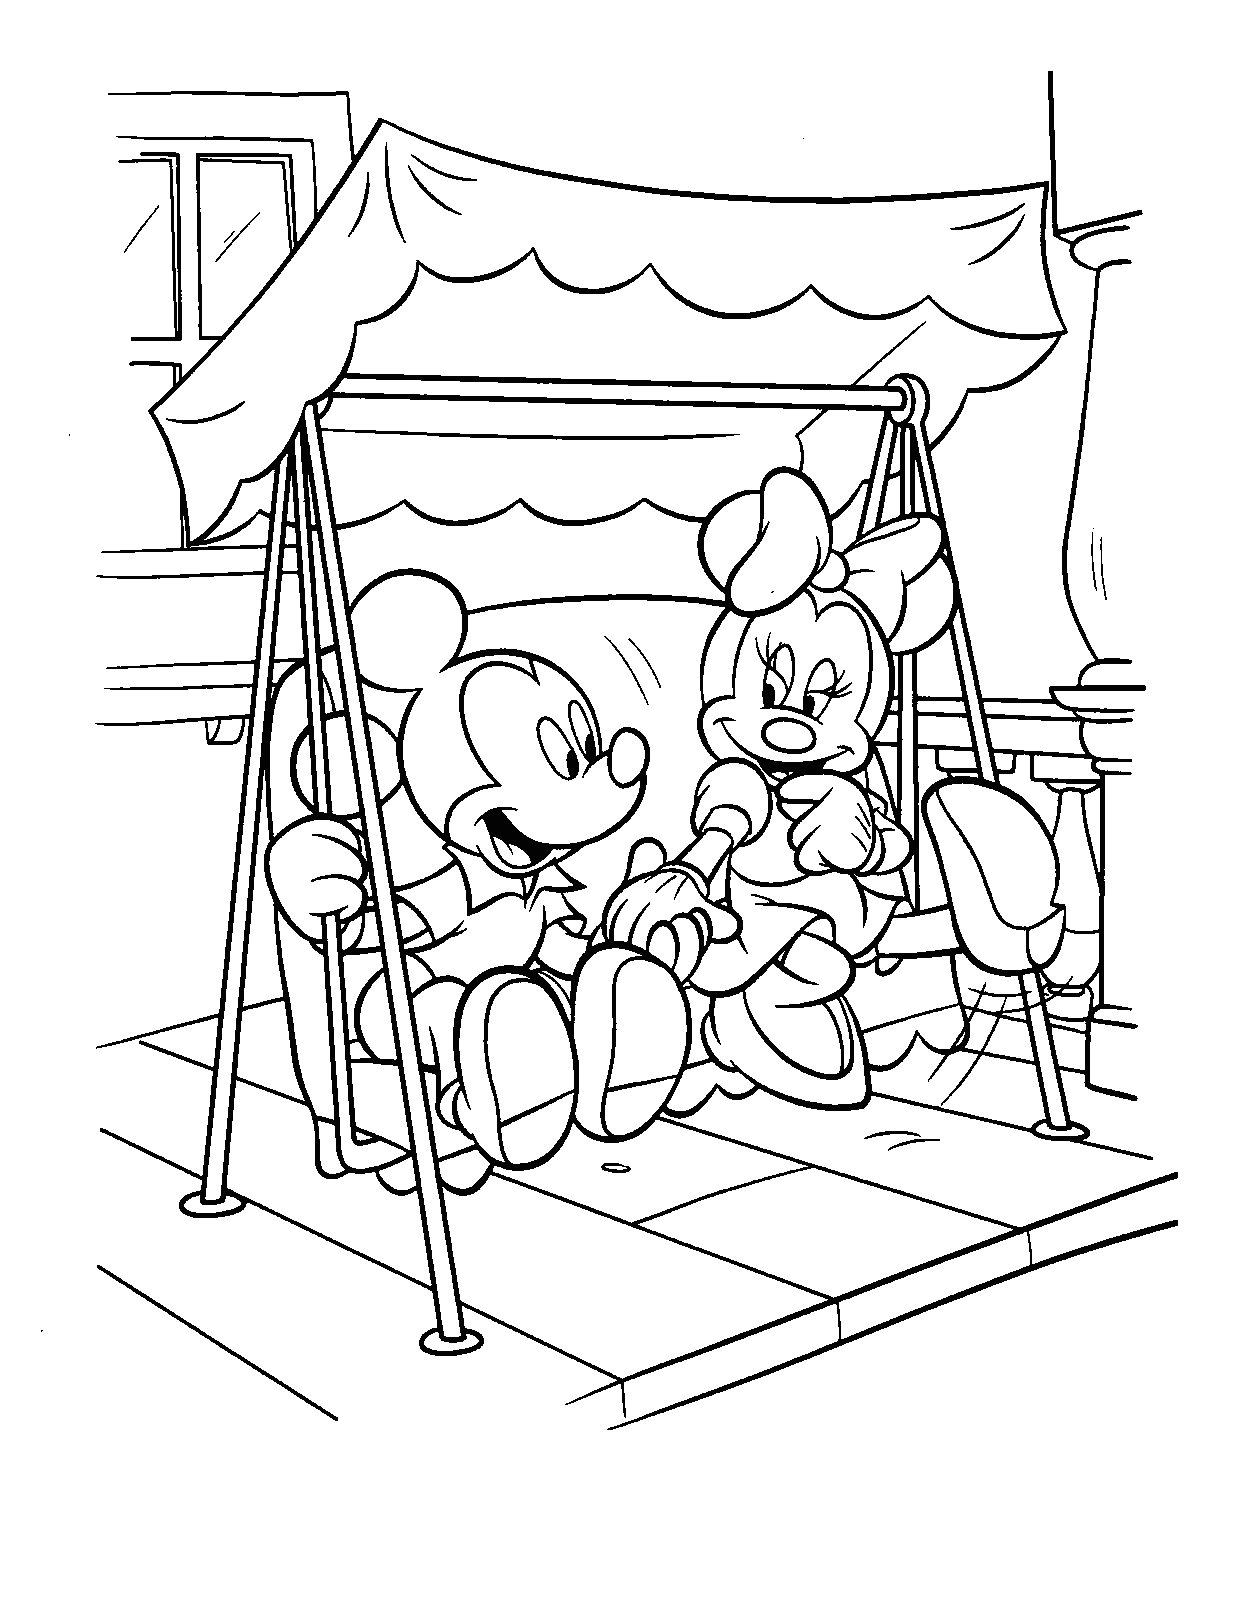 Mickey and Minnie Coloring Pages | 360ColoringPages